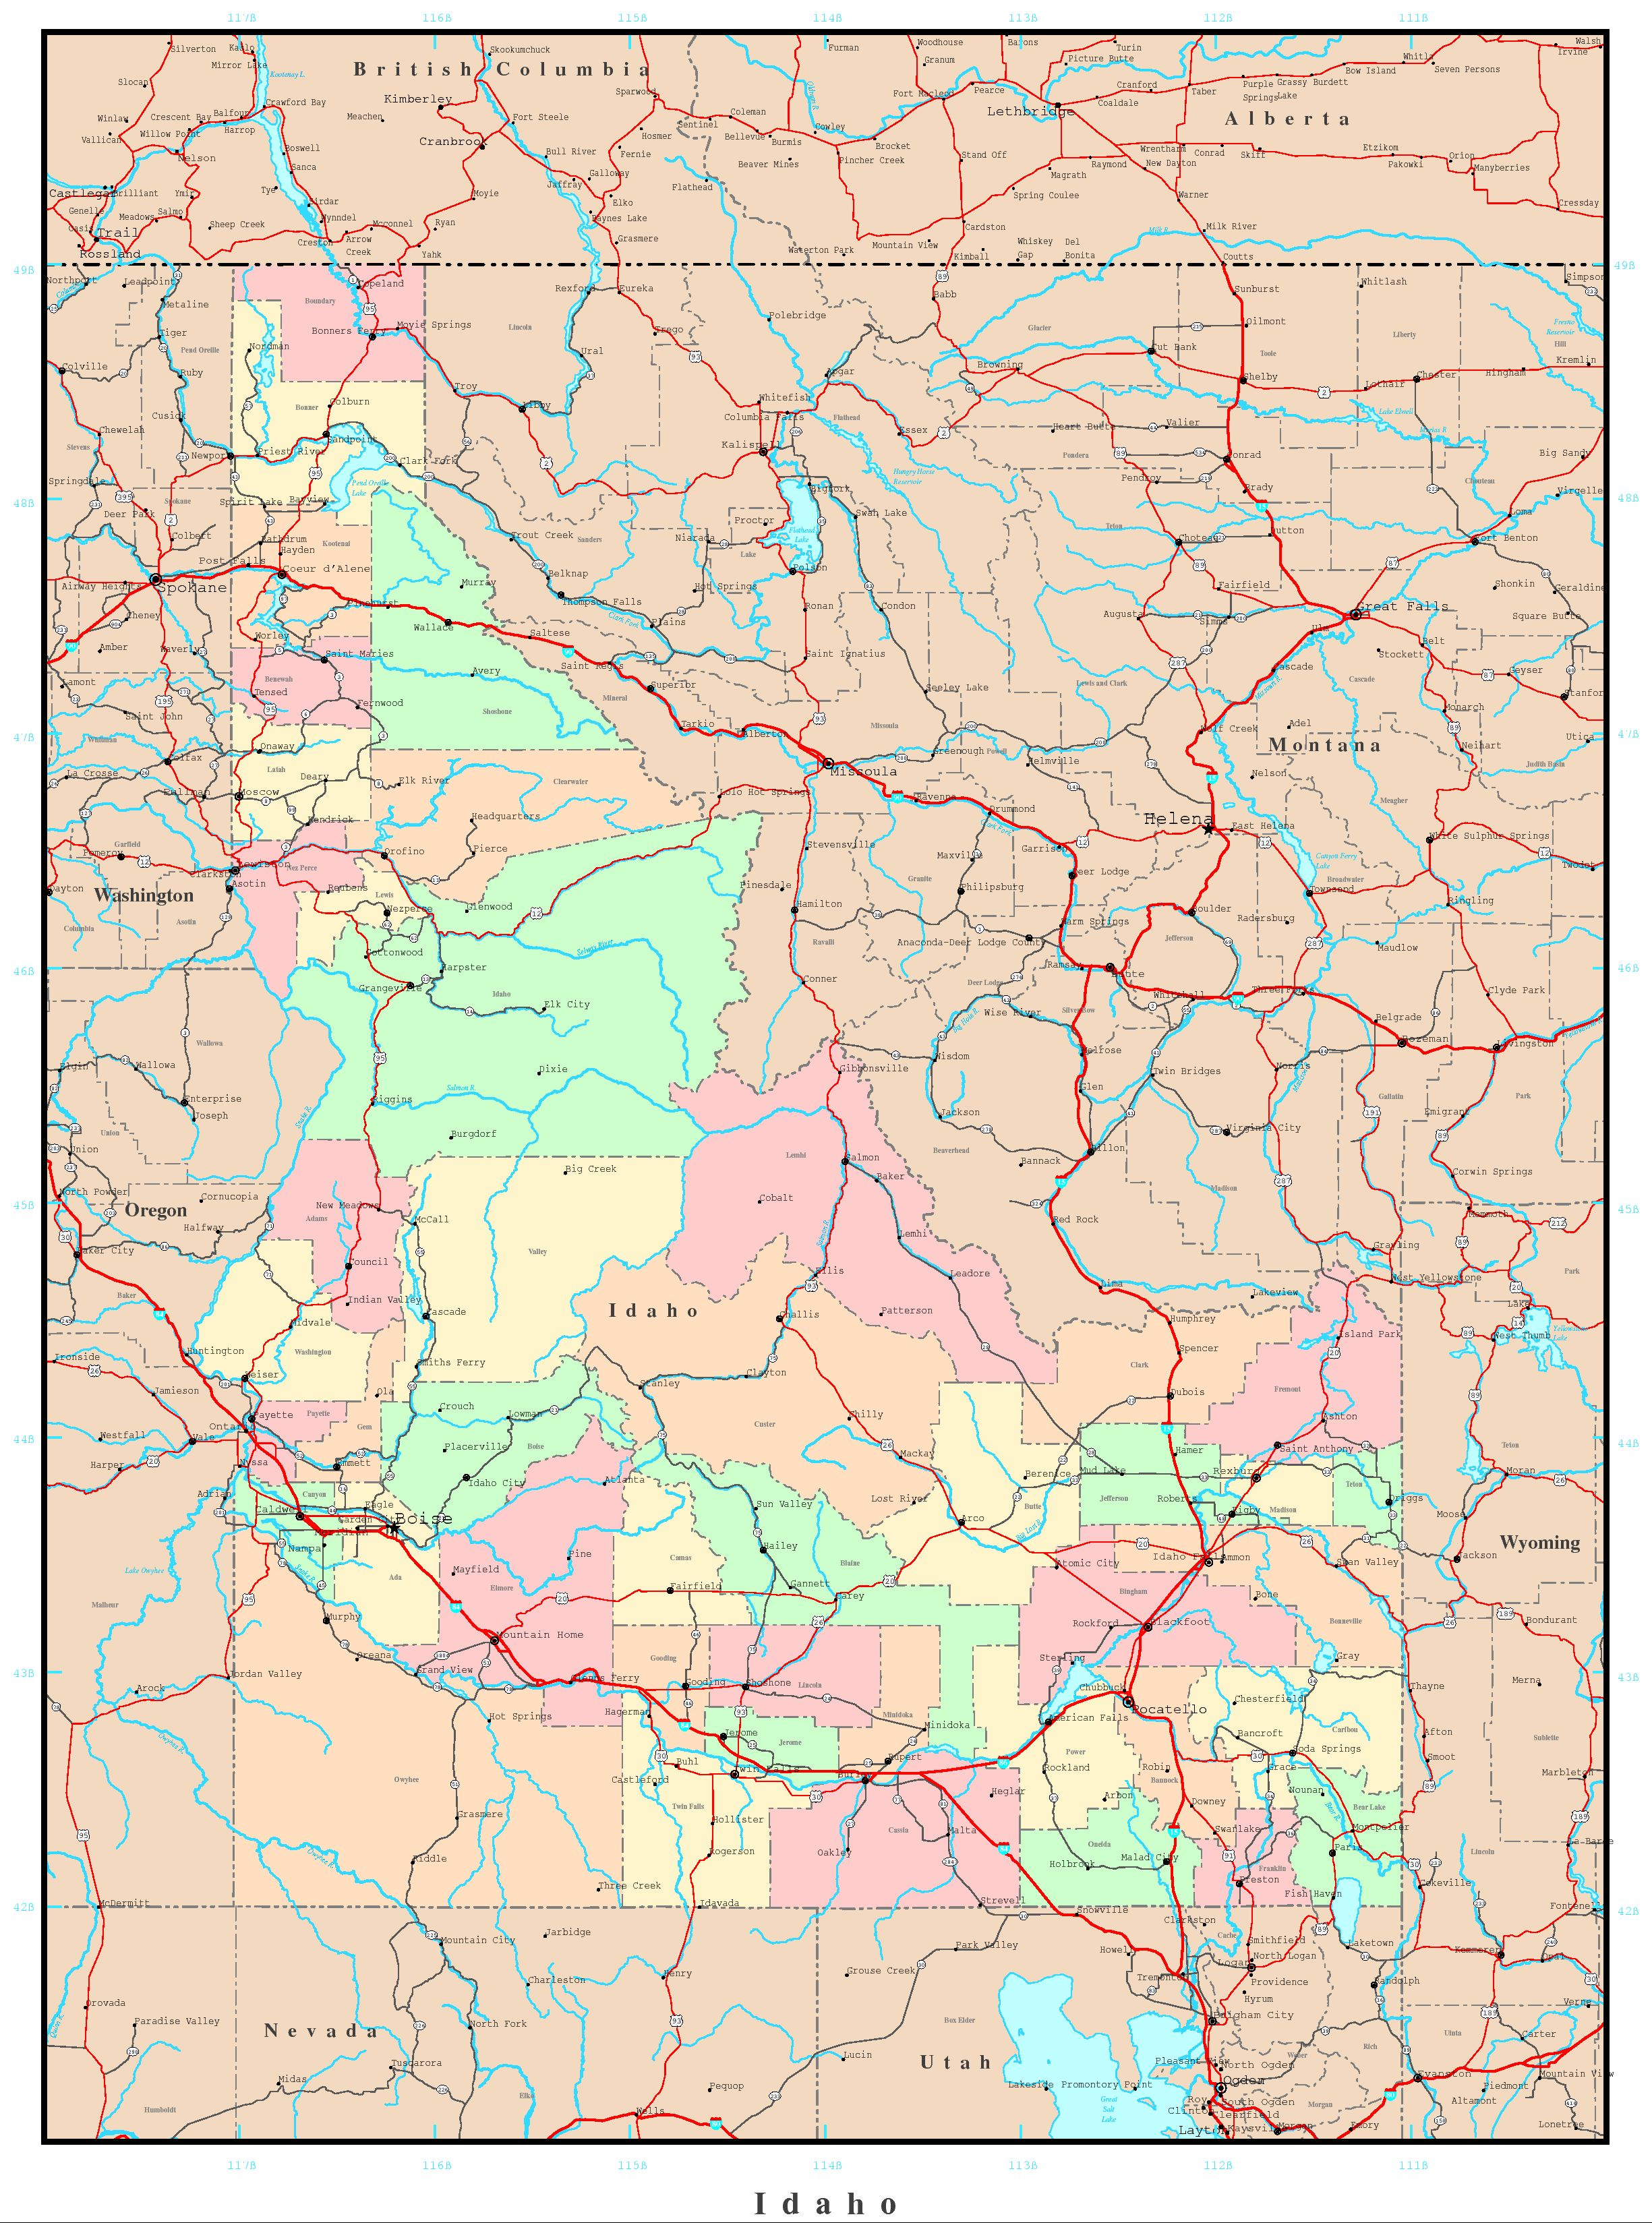 detailed map of montana with Idaho Political Map 384 on Idaho Political Map 384 additionally Utah further Kartor over usa together with Nuclear Fallout Maps additionally Delaware.